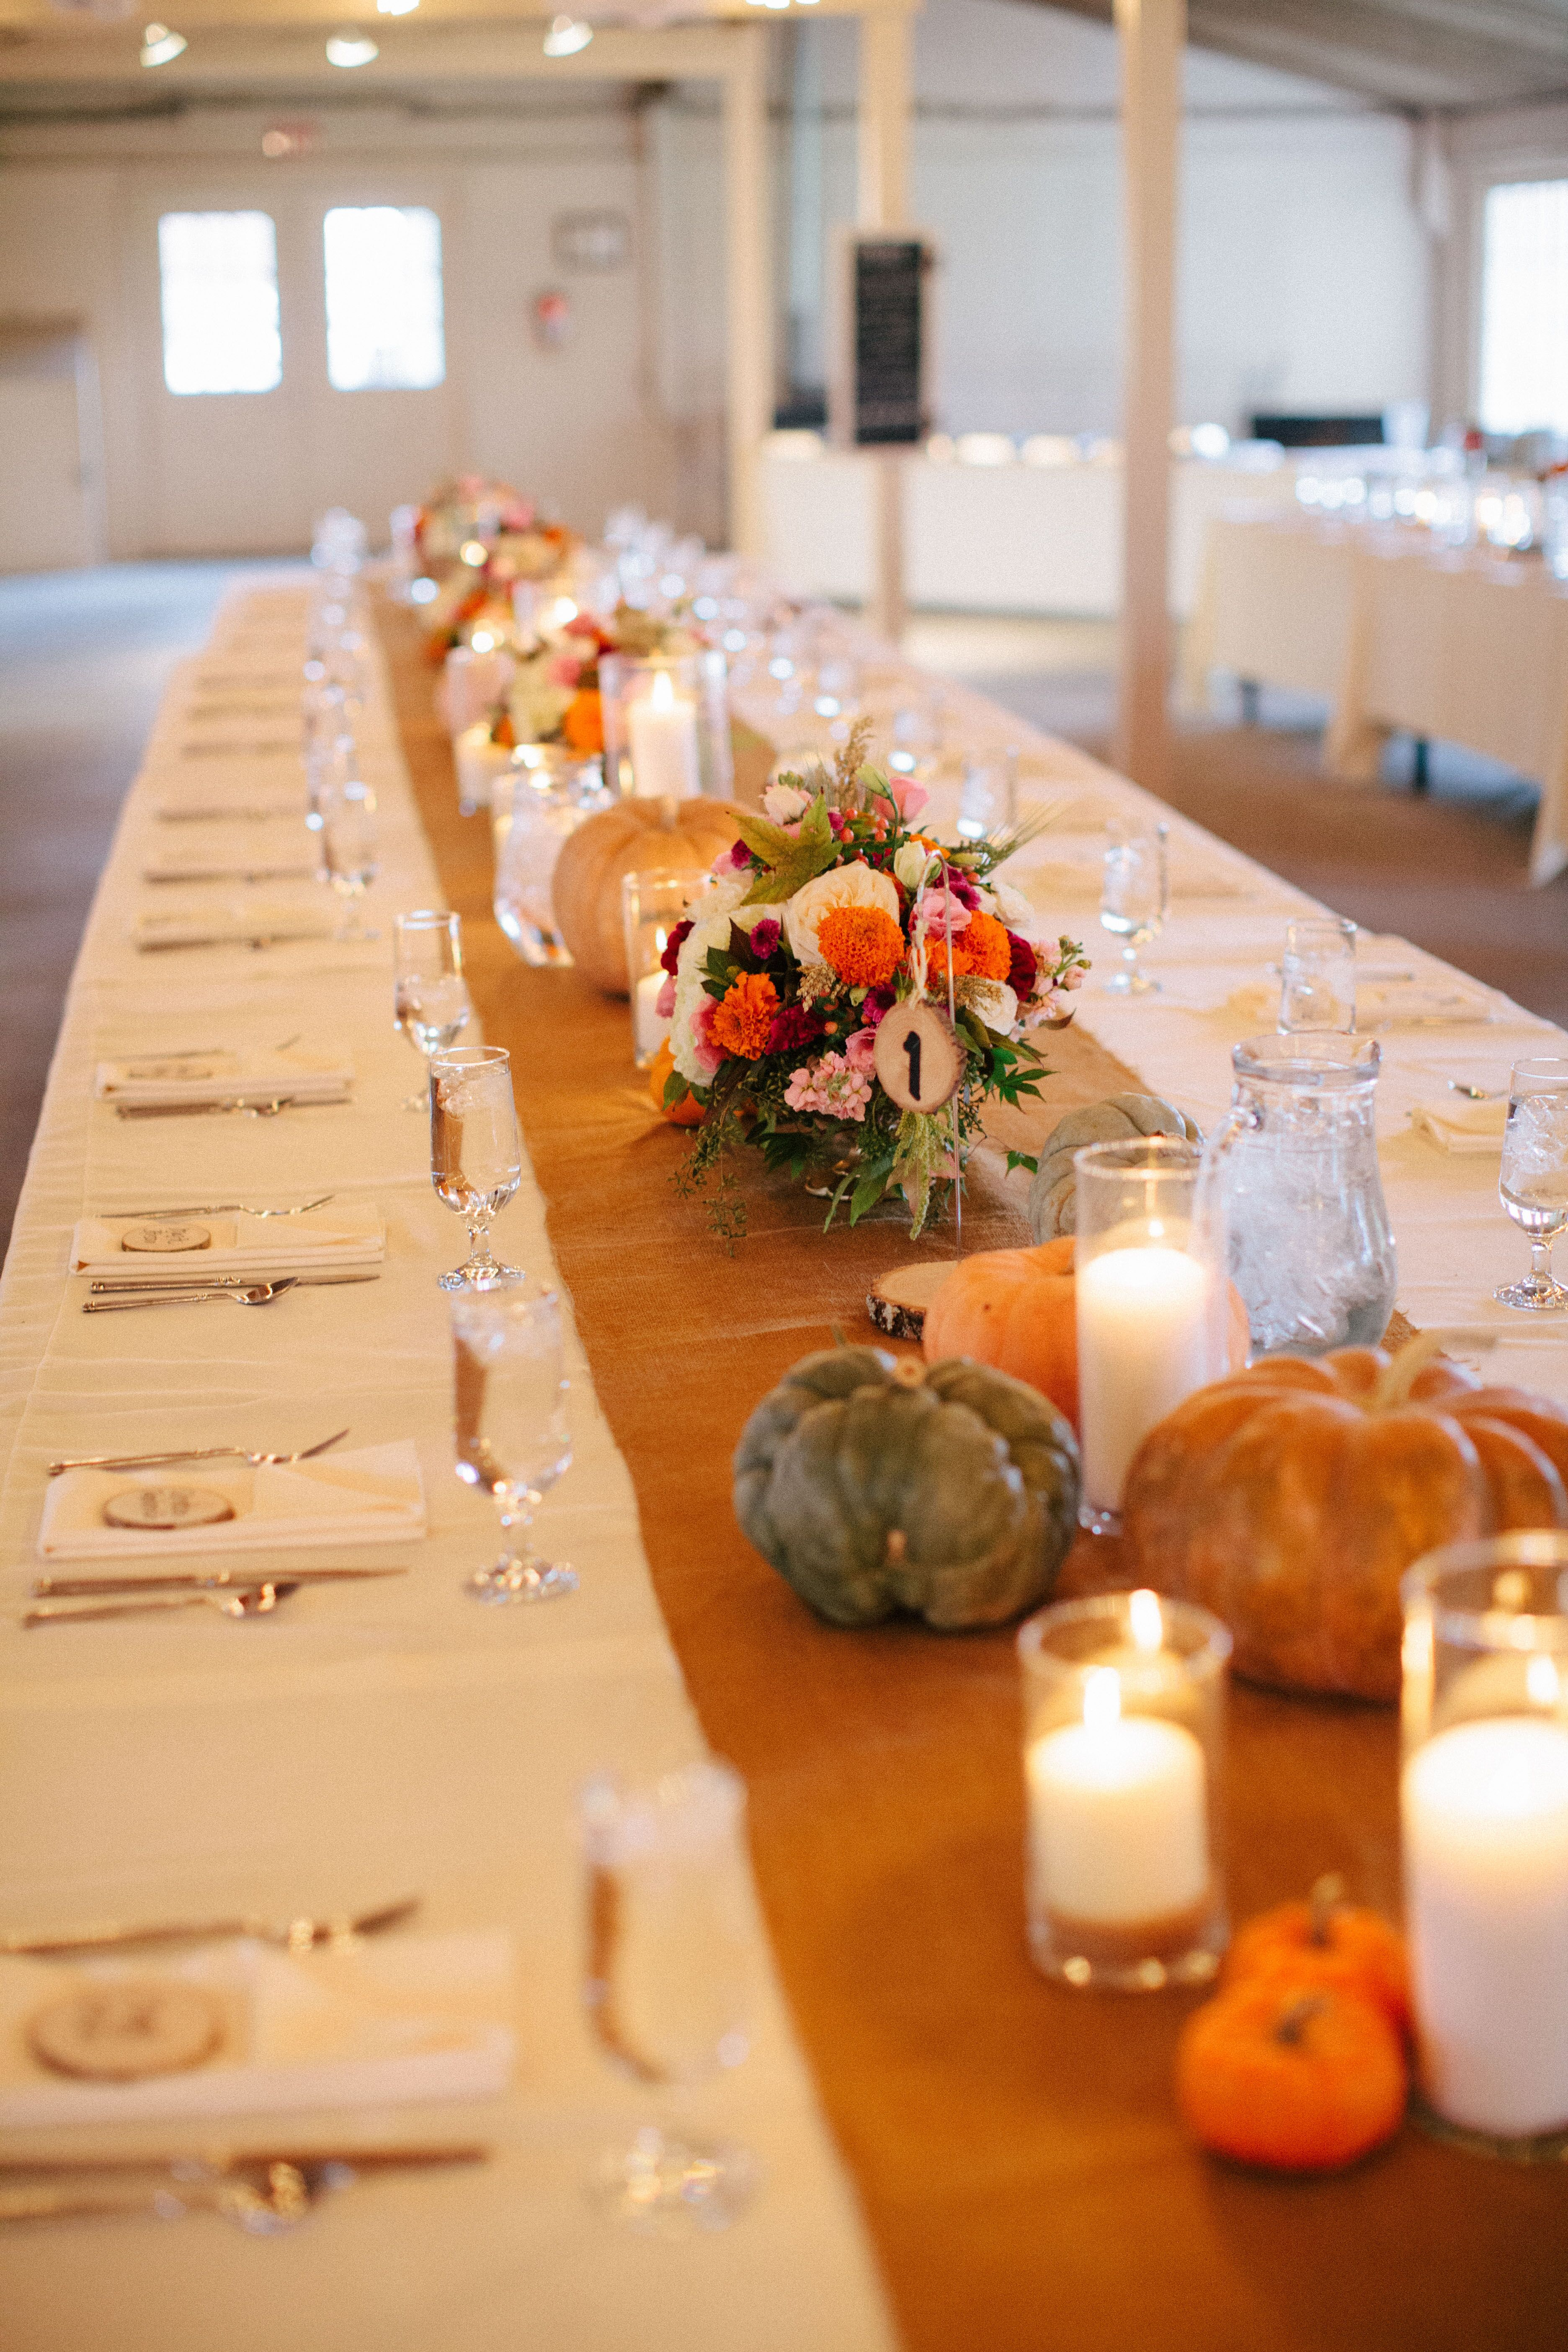 Burlap Table Runners With Pumpkins And Candles